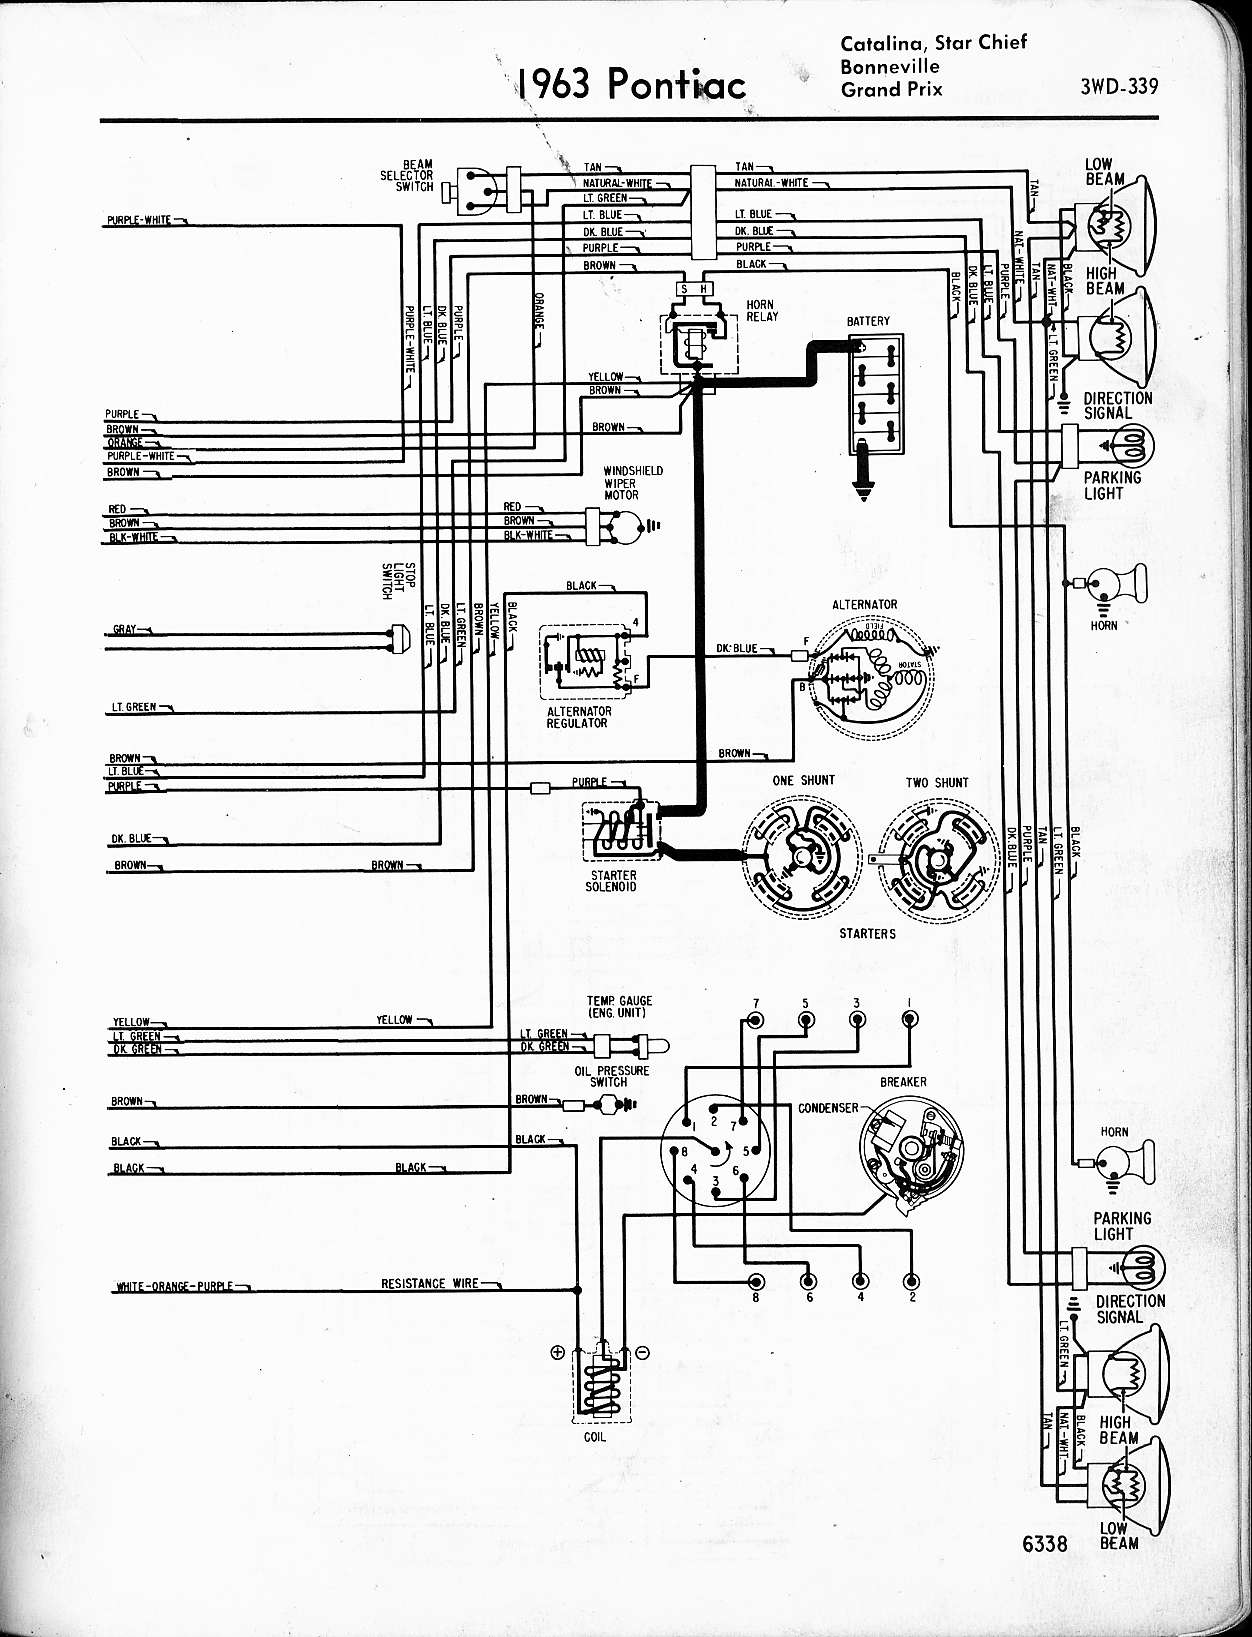 Wiring Diagram For Pontiac Bonneville Opinions About 2005 Fuse Box Wallace Racing Diagrams Rh Wallaceracing Com Ssei 2003